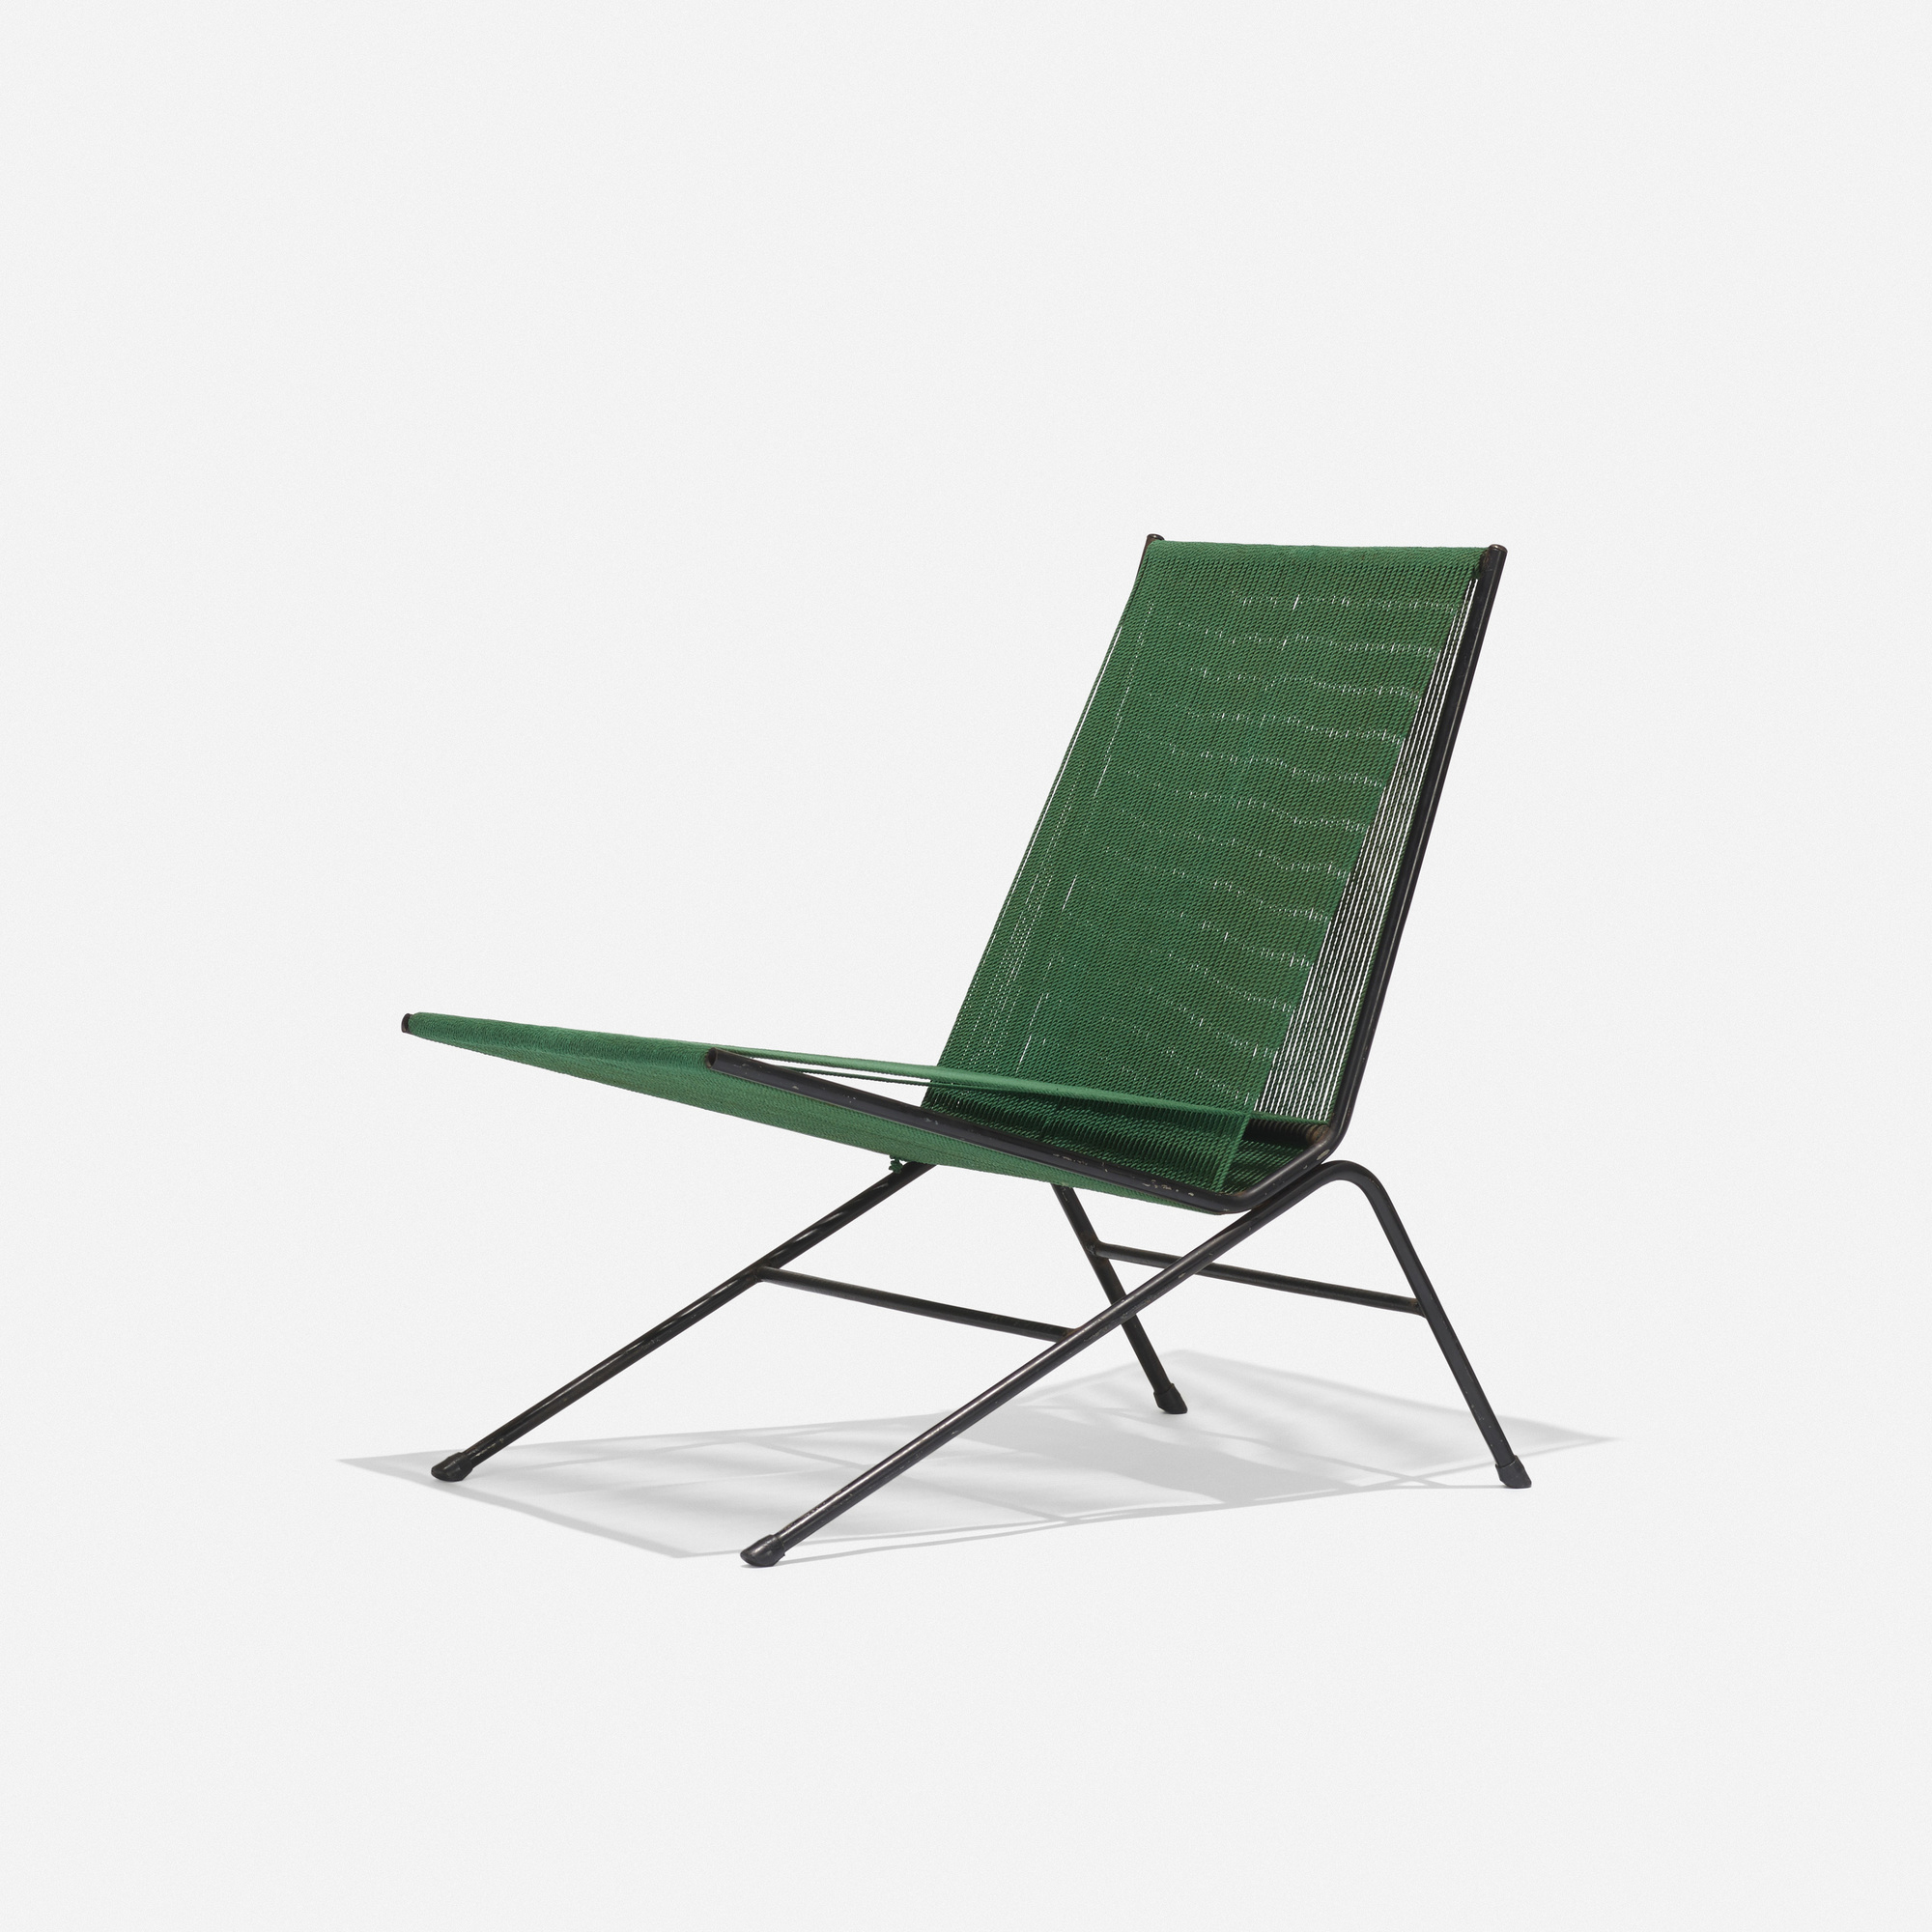 215: Allan Gould / lounge chair (1 of 3)